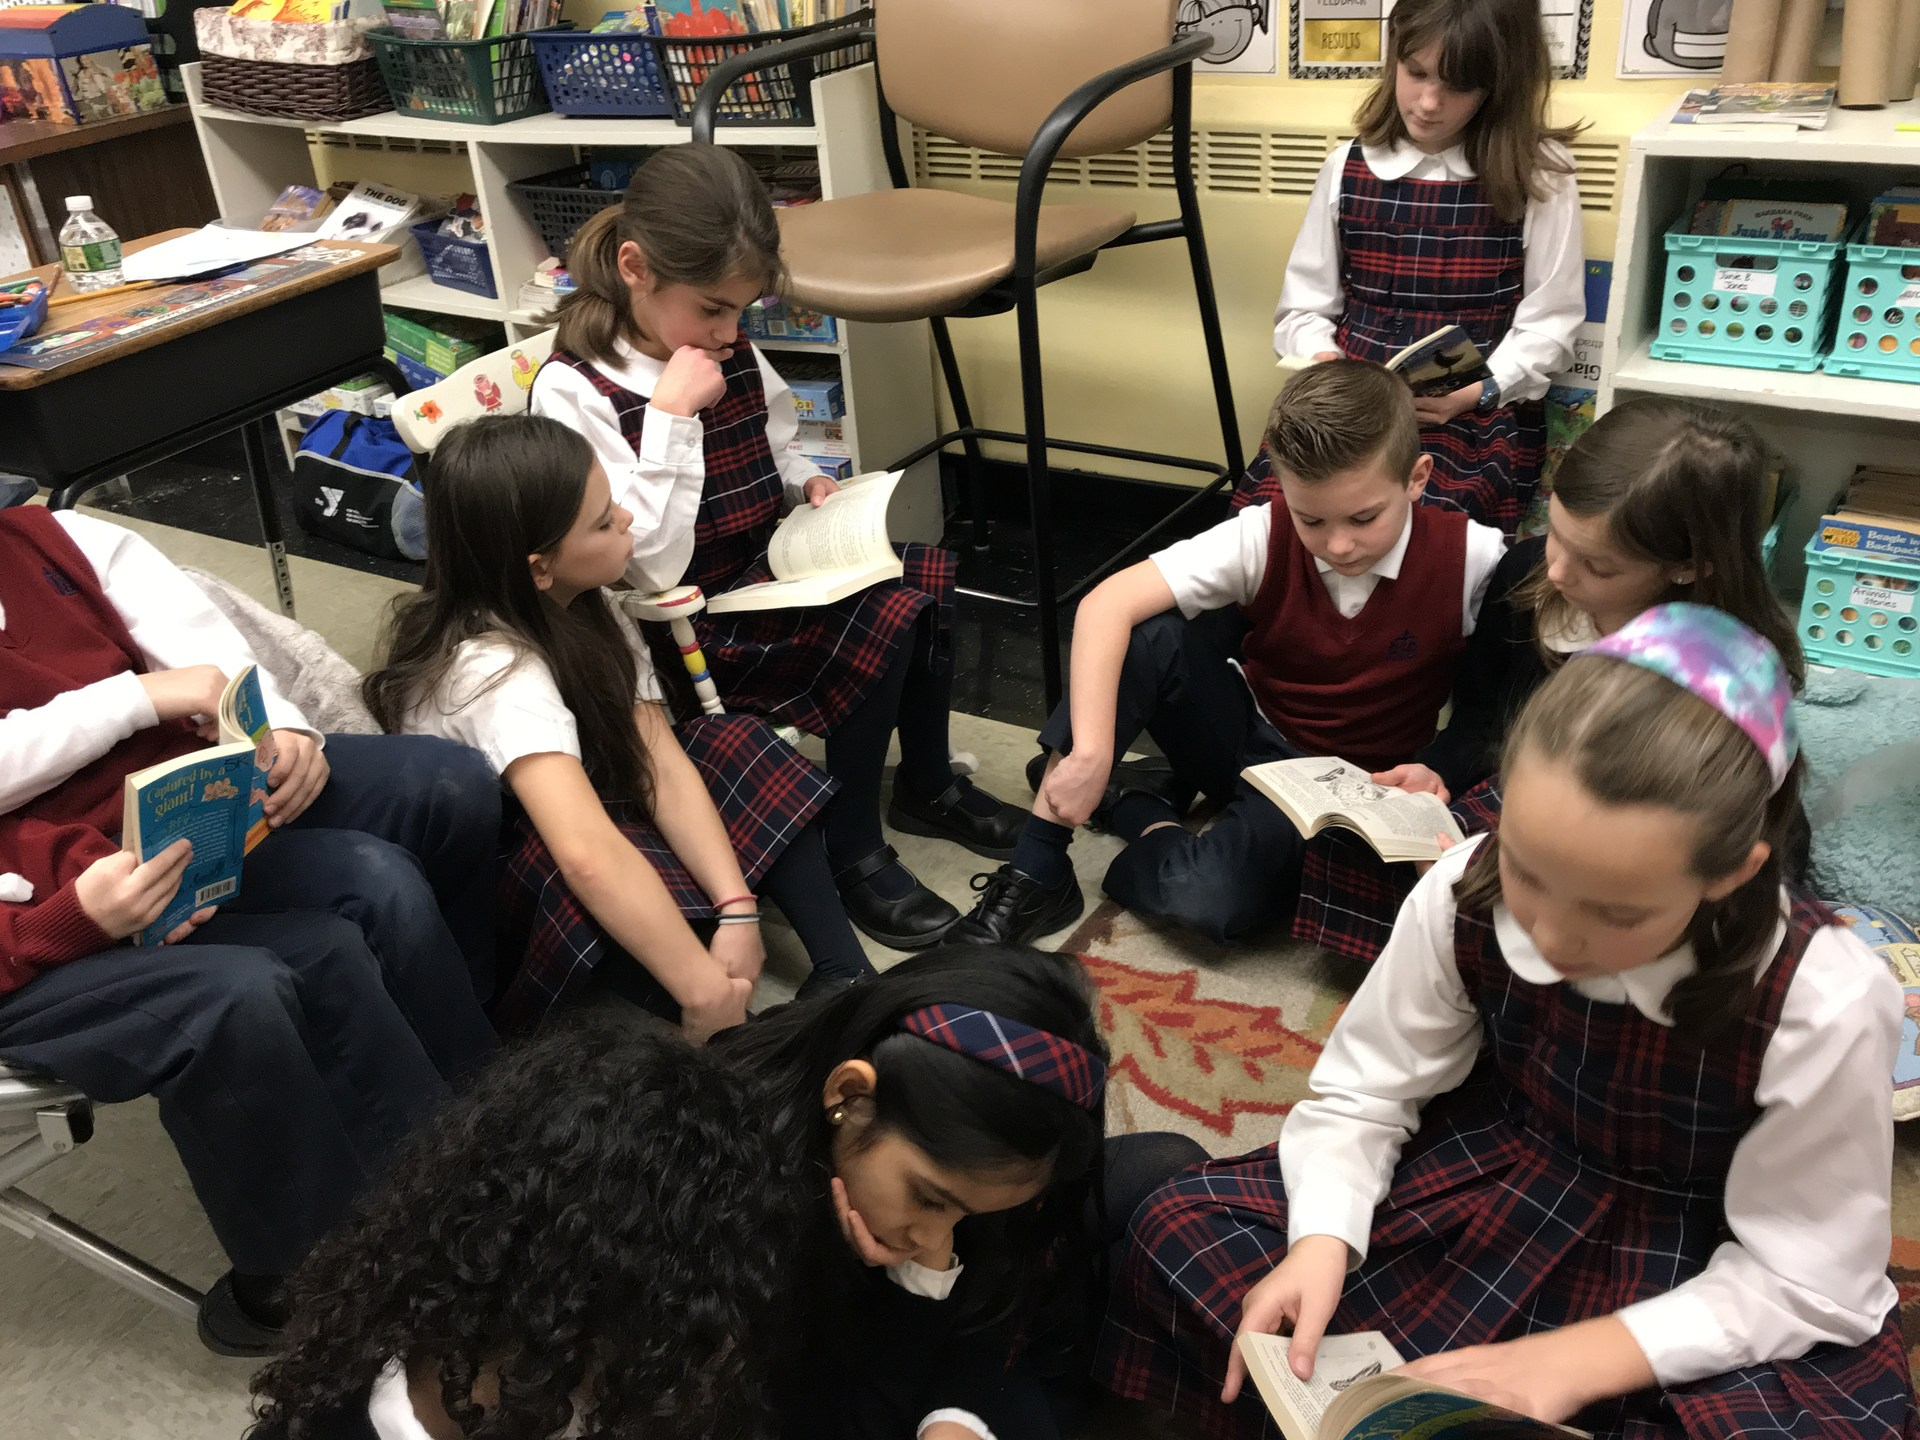 Group of students read together